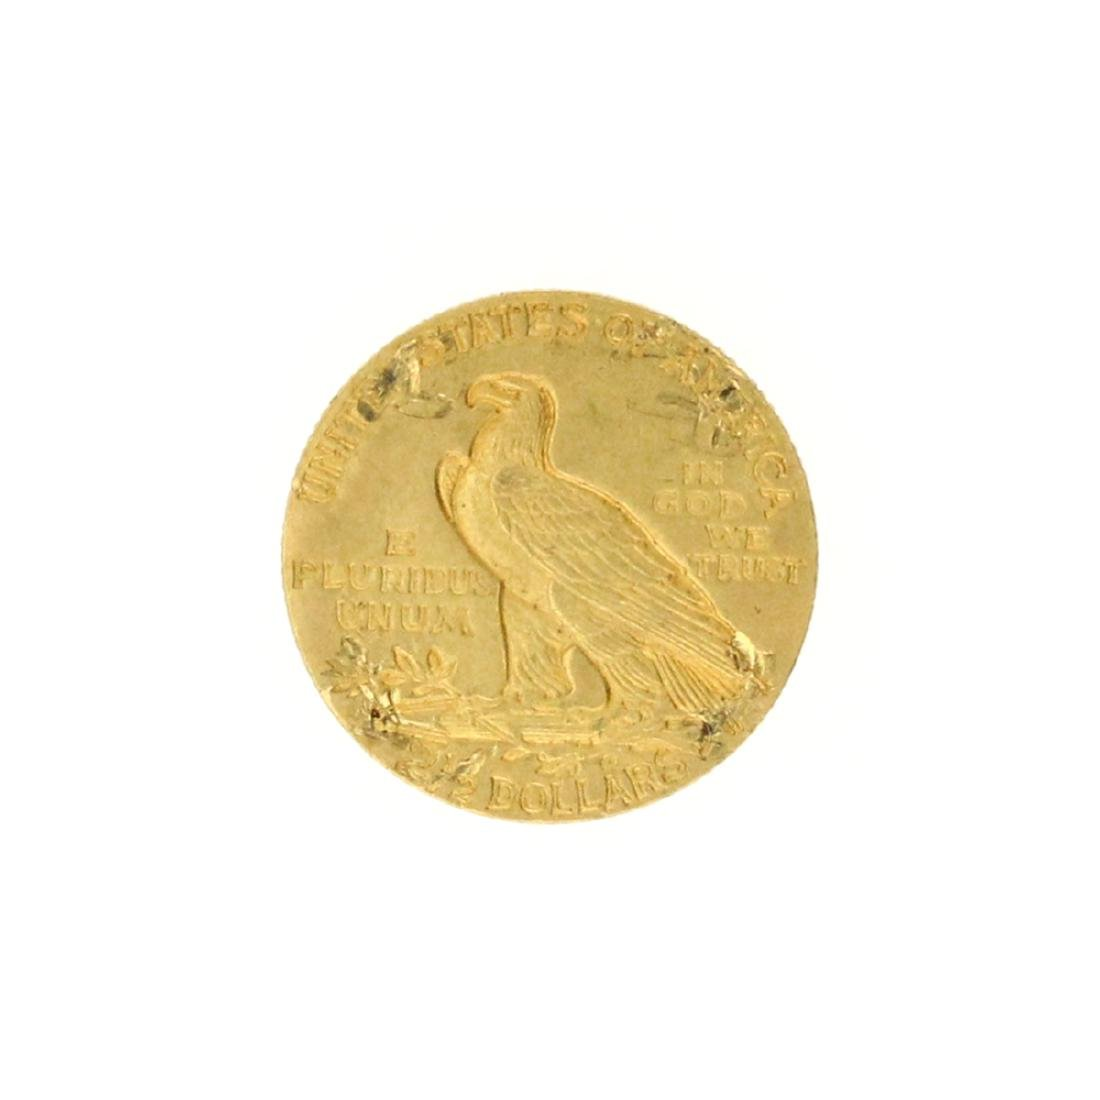 Extremely Rare 1910 $2.50 U.S. Indian Head Gold Coin - 2